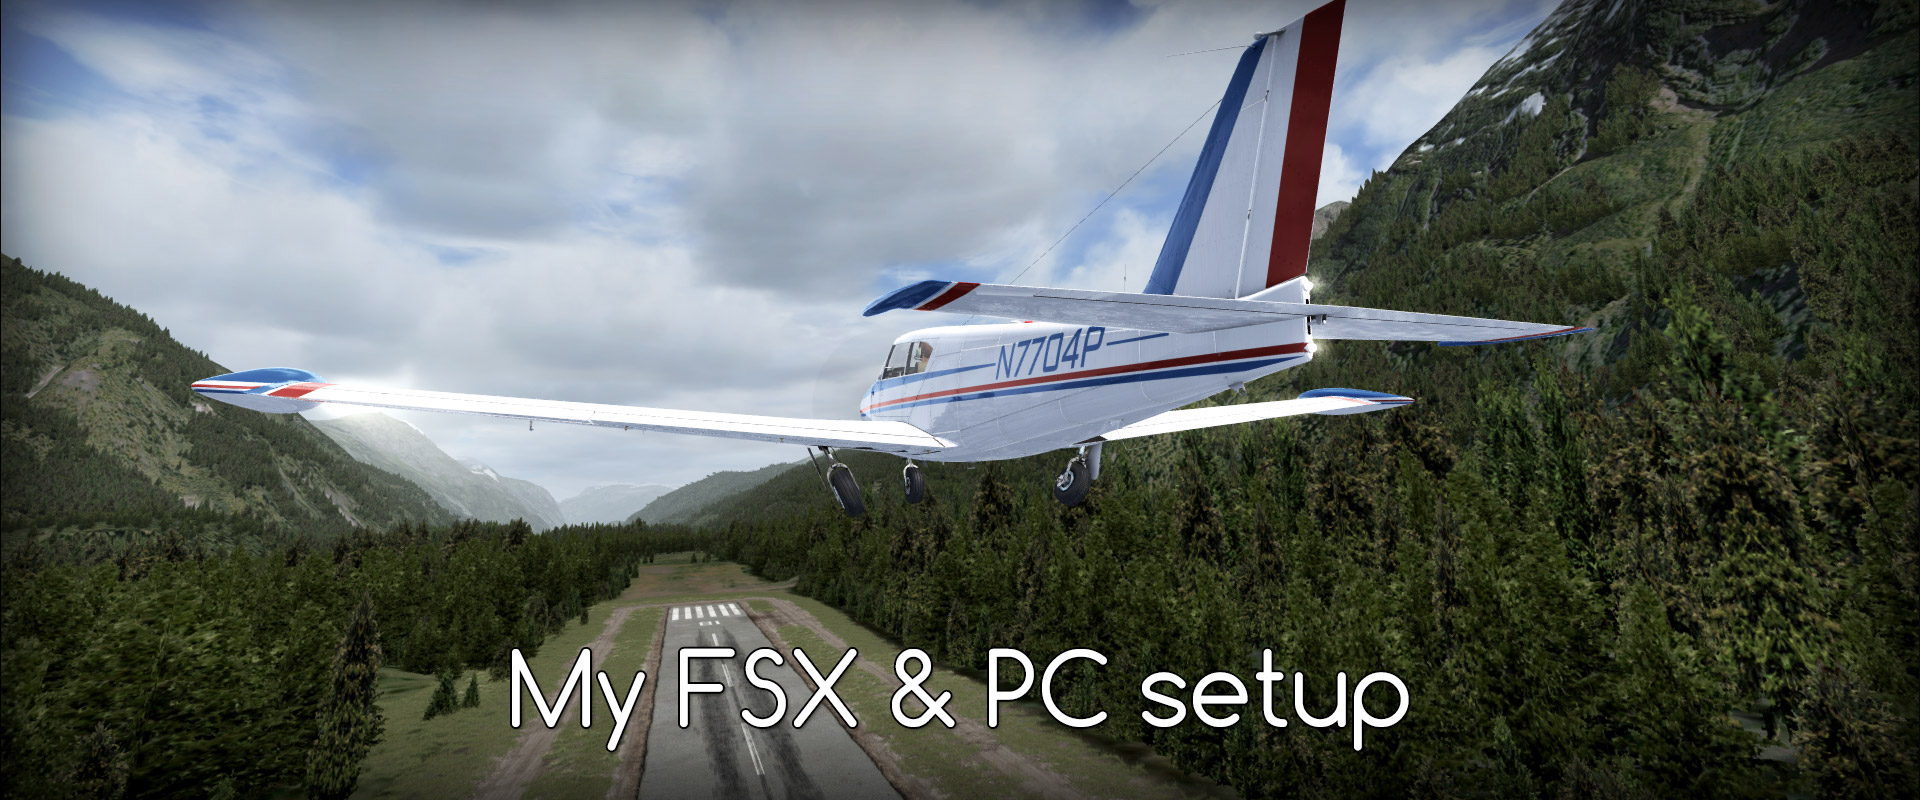 My FSX & PC setup